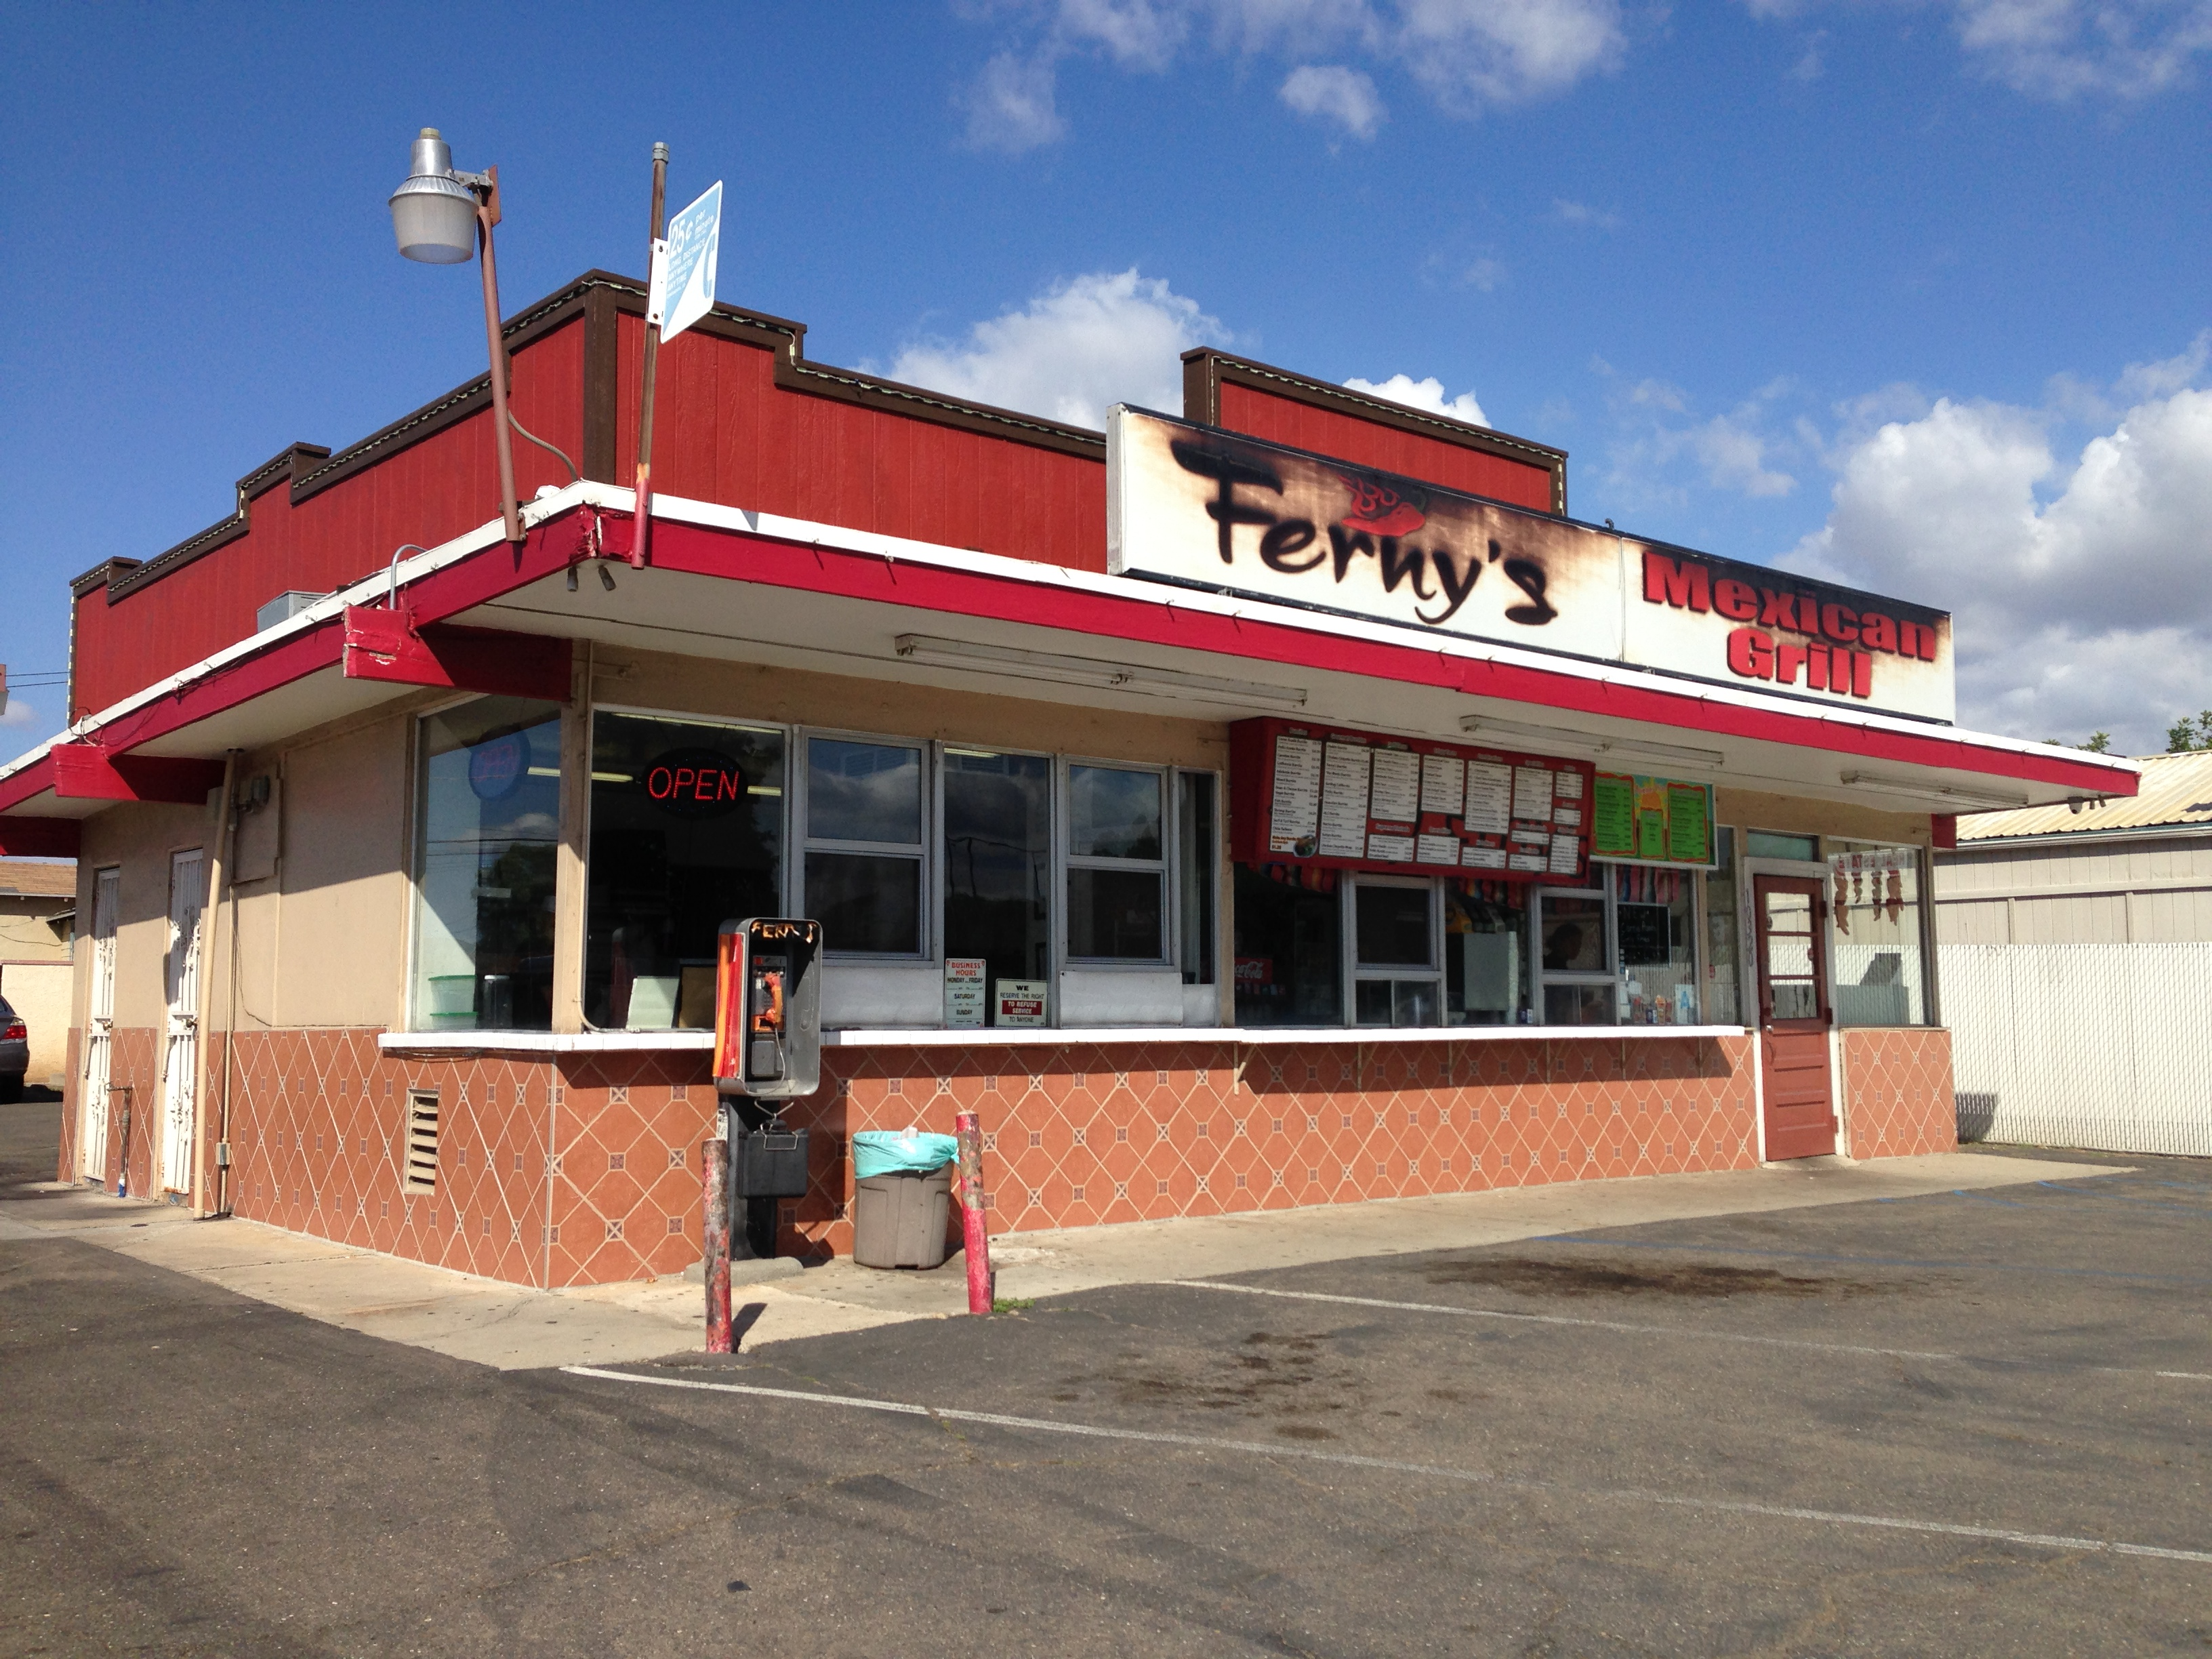 Ferny's Mexican Grill. We're not sure if the scorch marks are an affectation or if there was an actual fire.